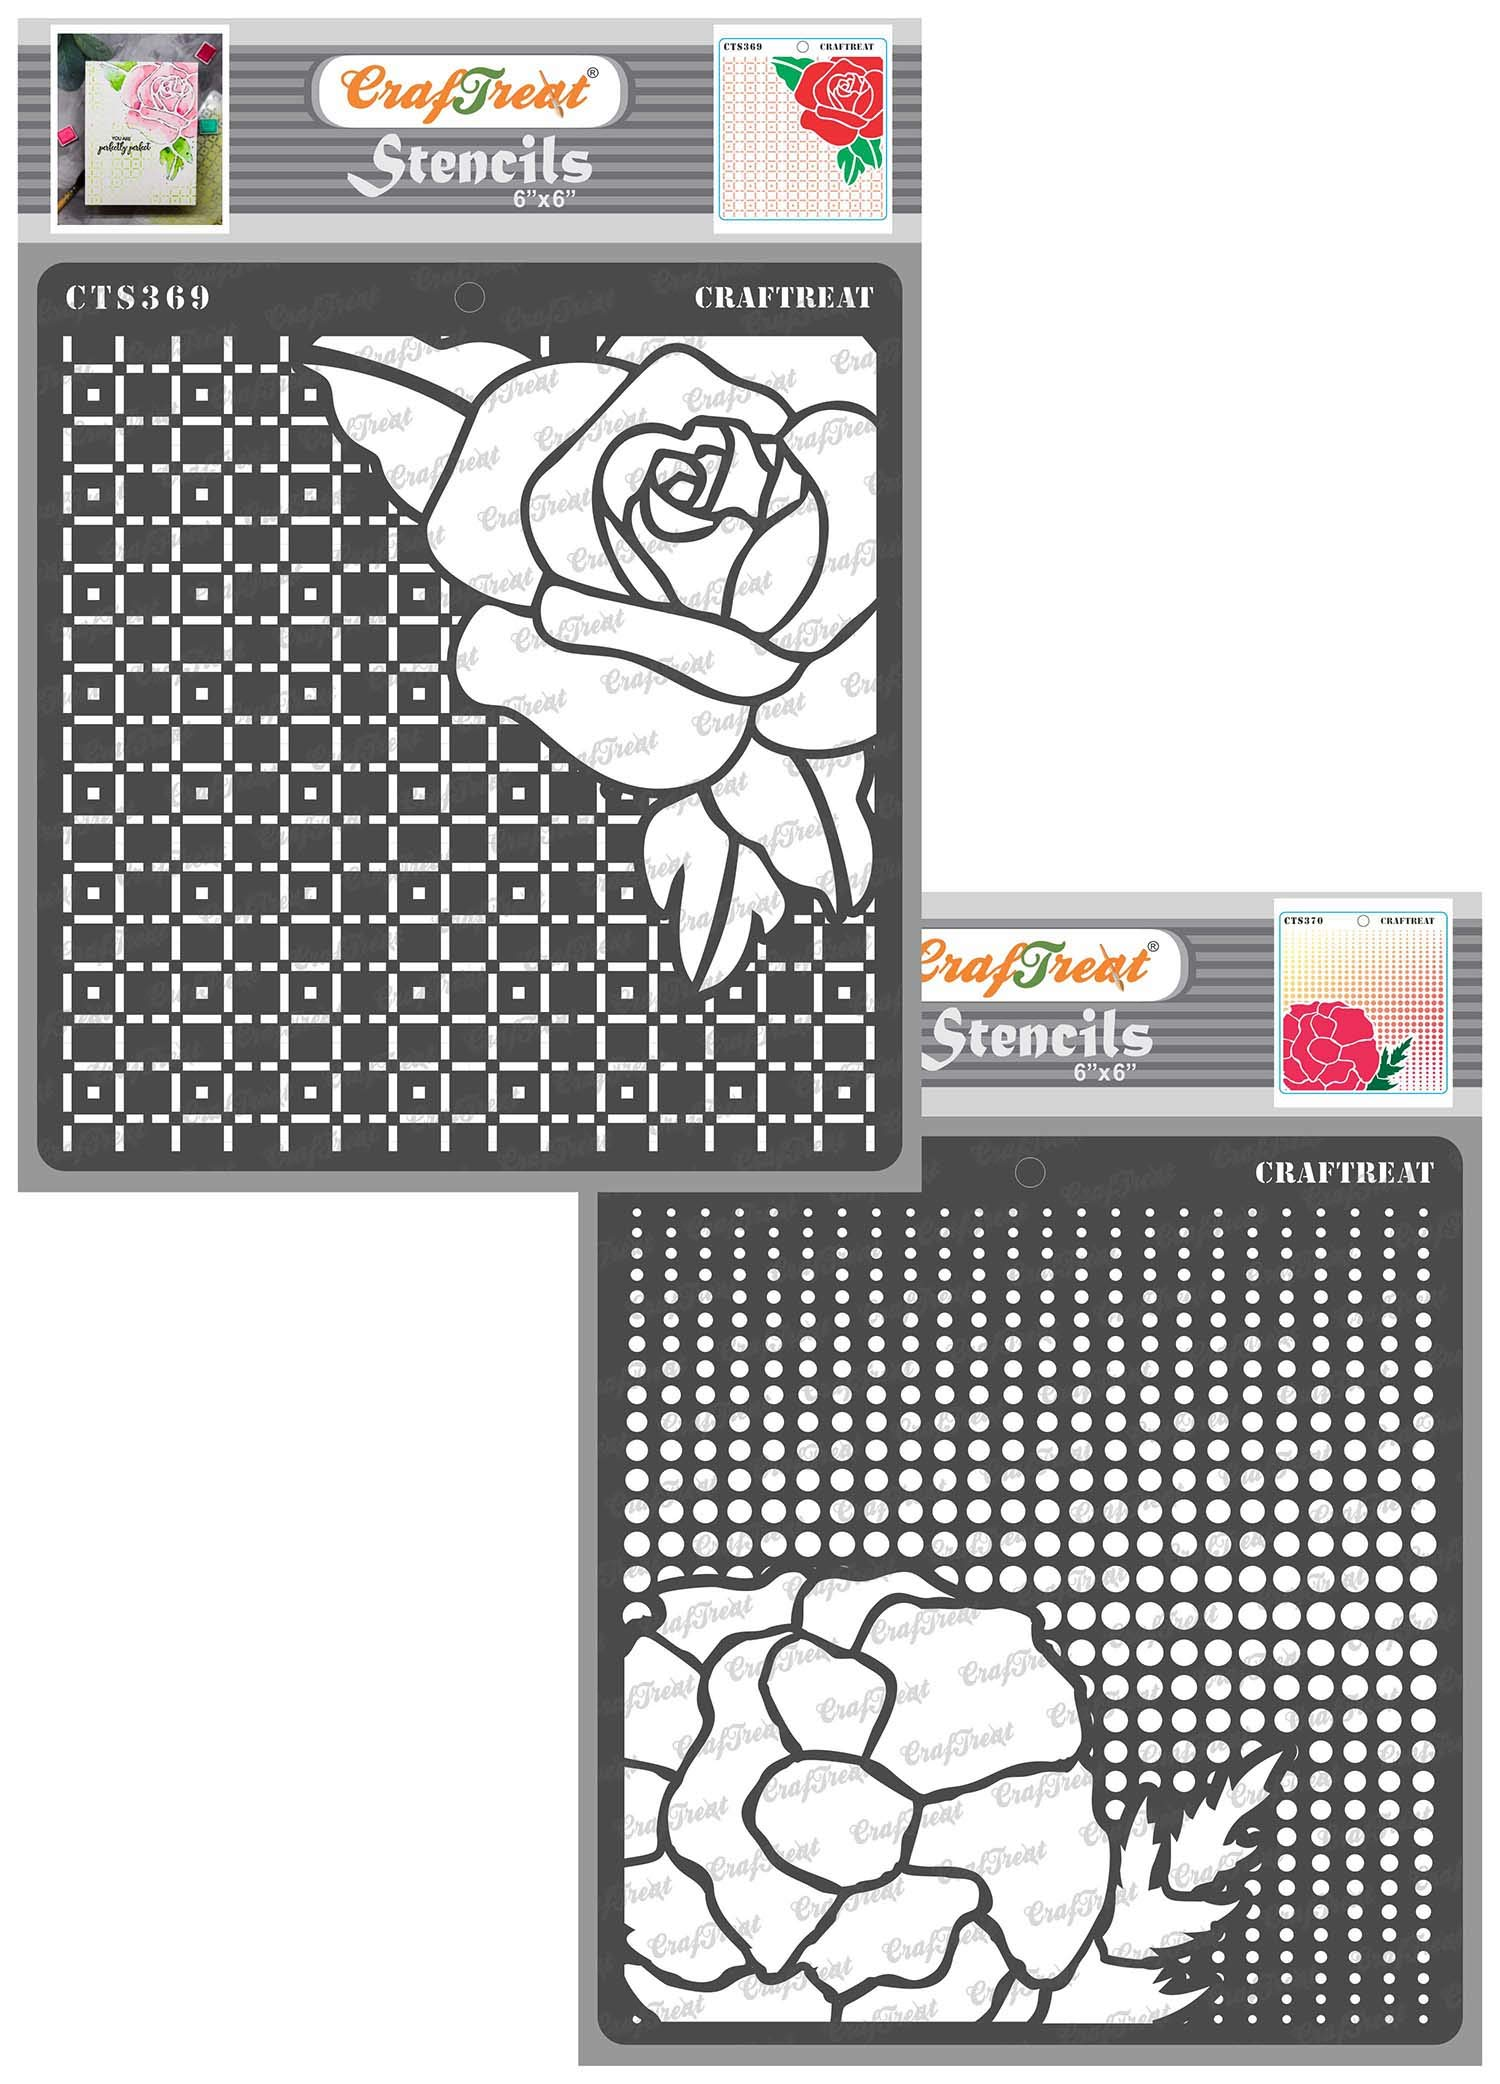 CrafTreat Flower Stencils for Painting on Wood, Wall, Tile, Paper, Fabric and Floor - Checkered Rose and Dotted Poppies Stencil - 2 Pcs - 6x6 Inches - Reusable DIY Craft Stencils for Painting Flowers